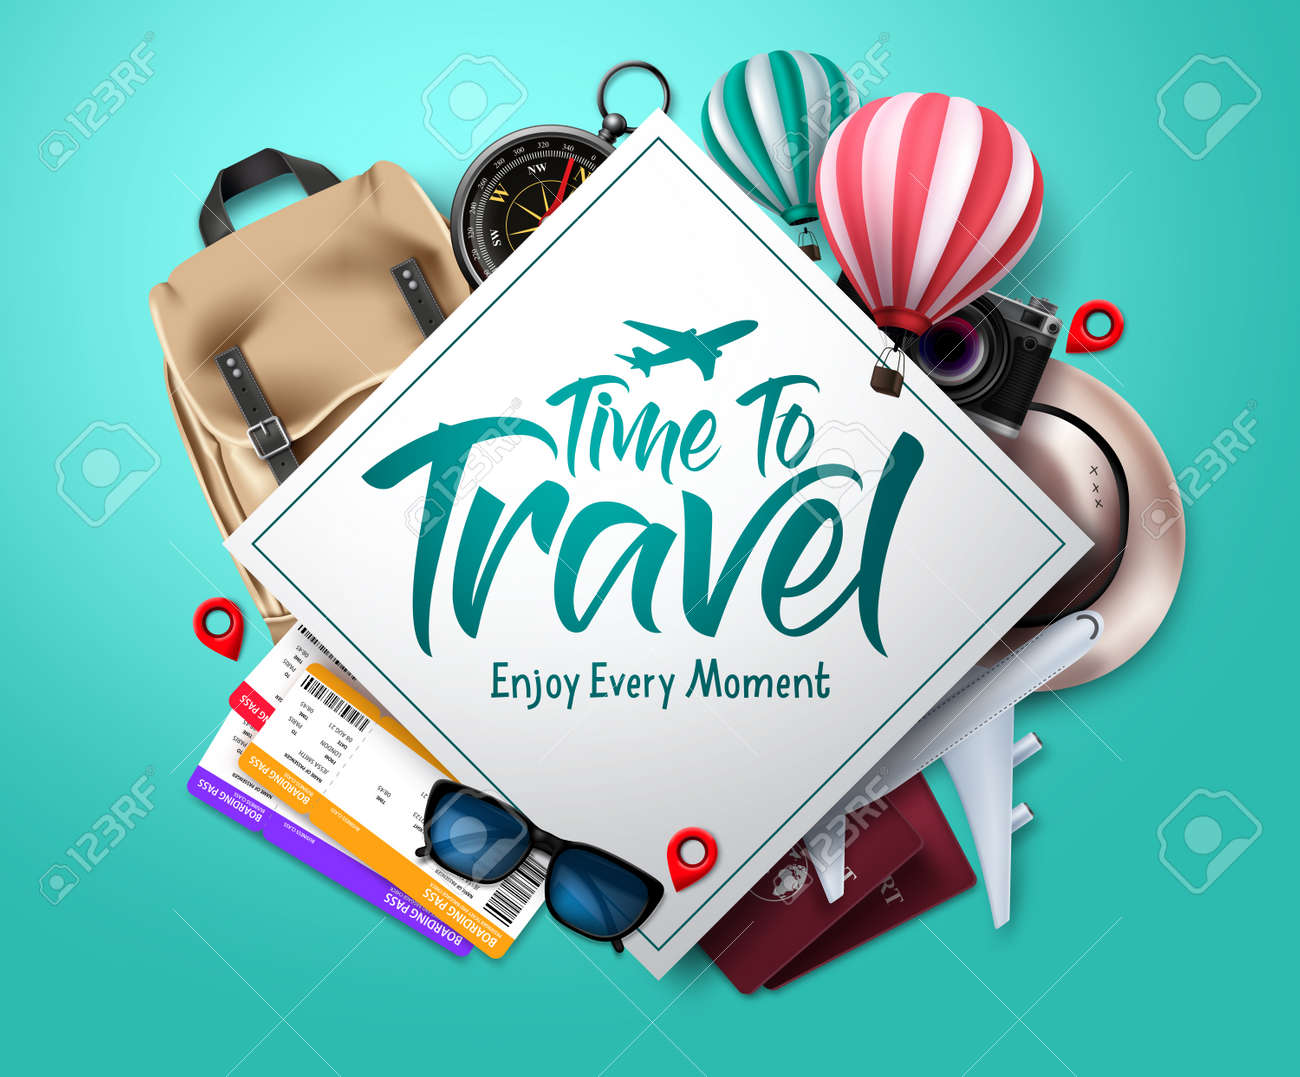 Travel time vector template design. Time to travel text in empty space frame with traveler elements for international trip and vacation. Vector illustration - 170293553